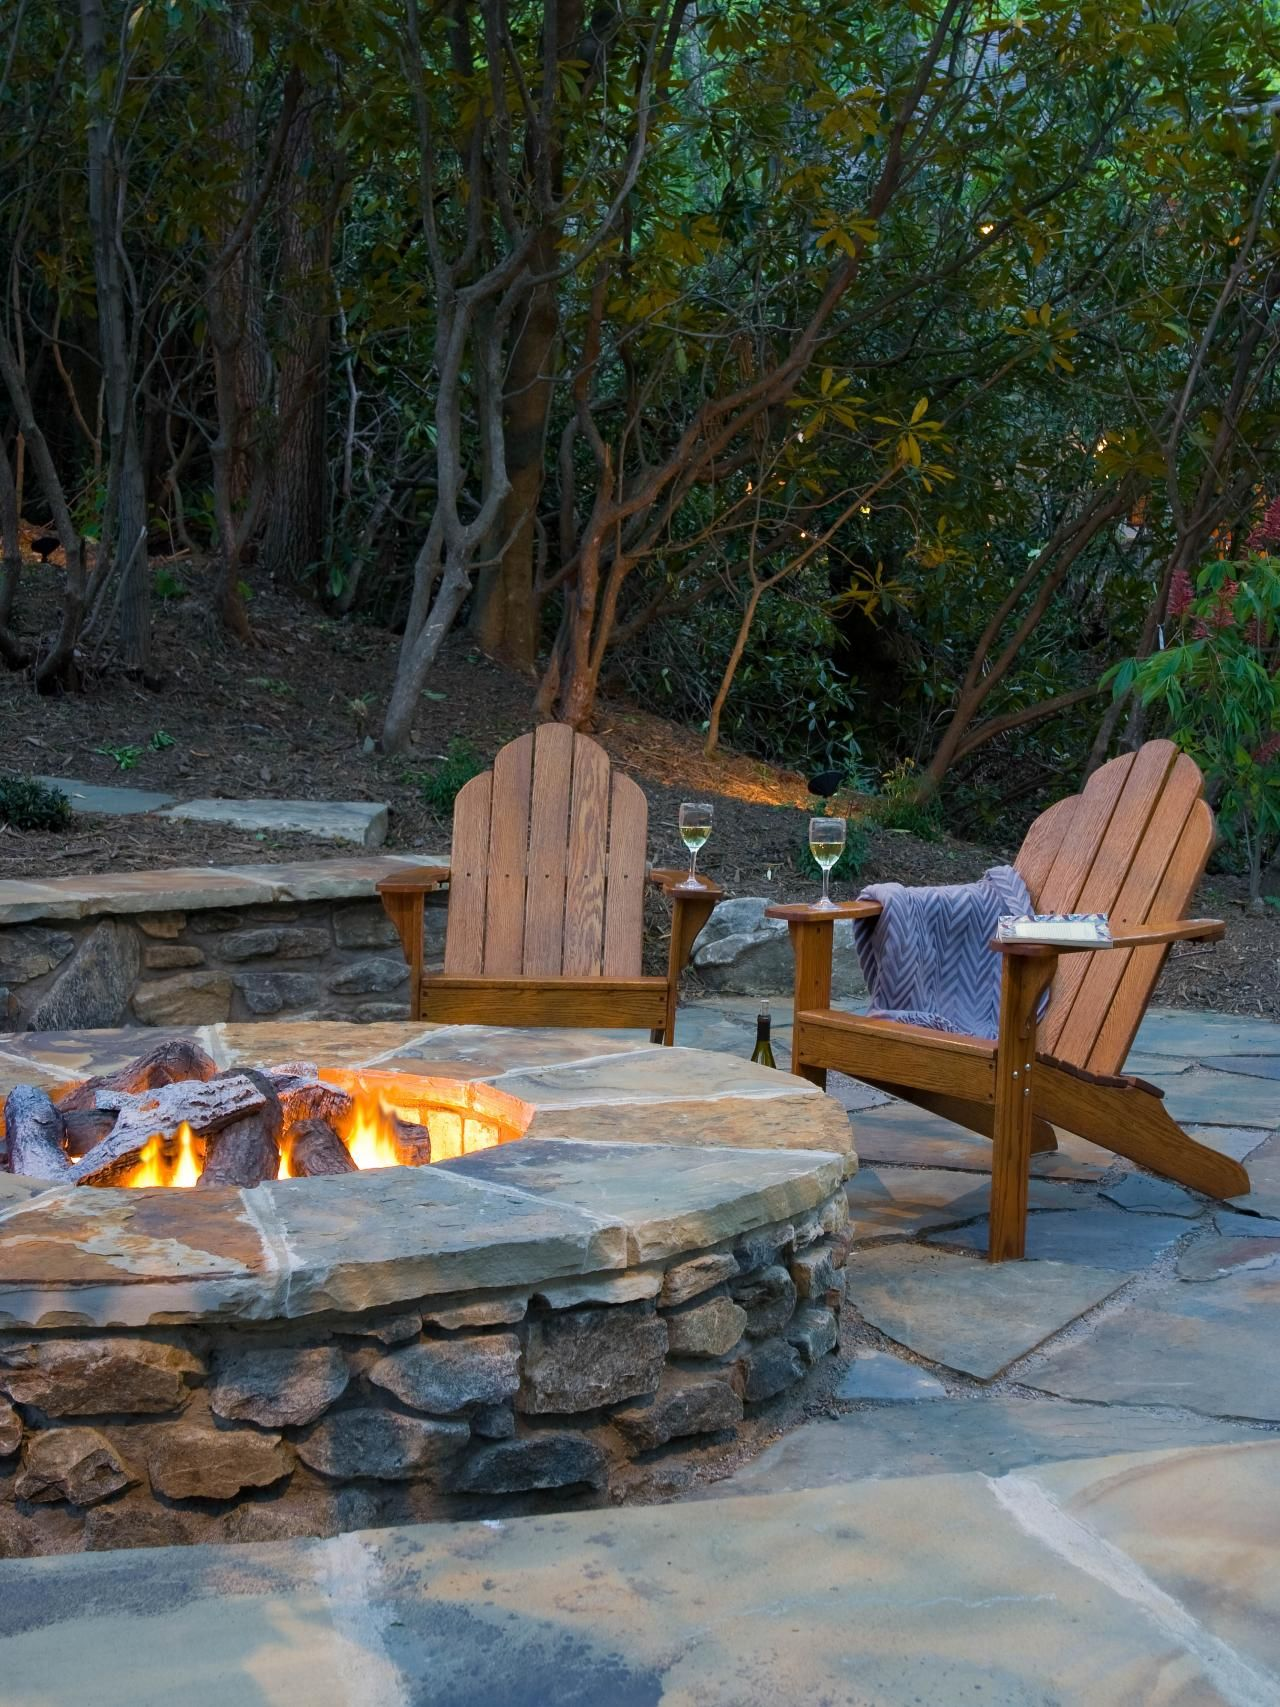 Outdoor fire pit designs pictures to pin on pinterest -  Pin On Pinterest Outdoor Fire Pits Download